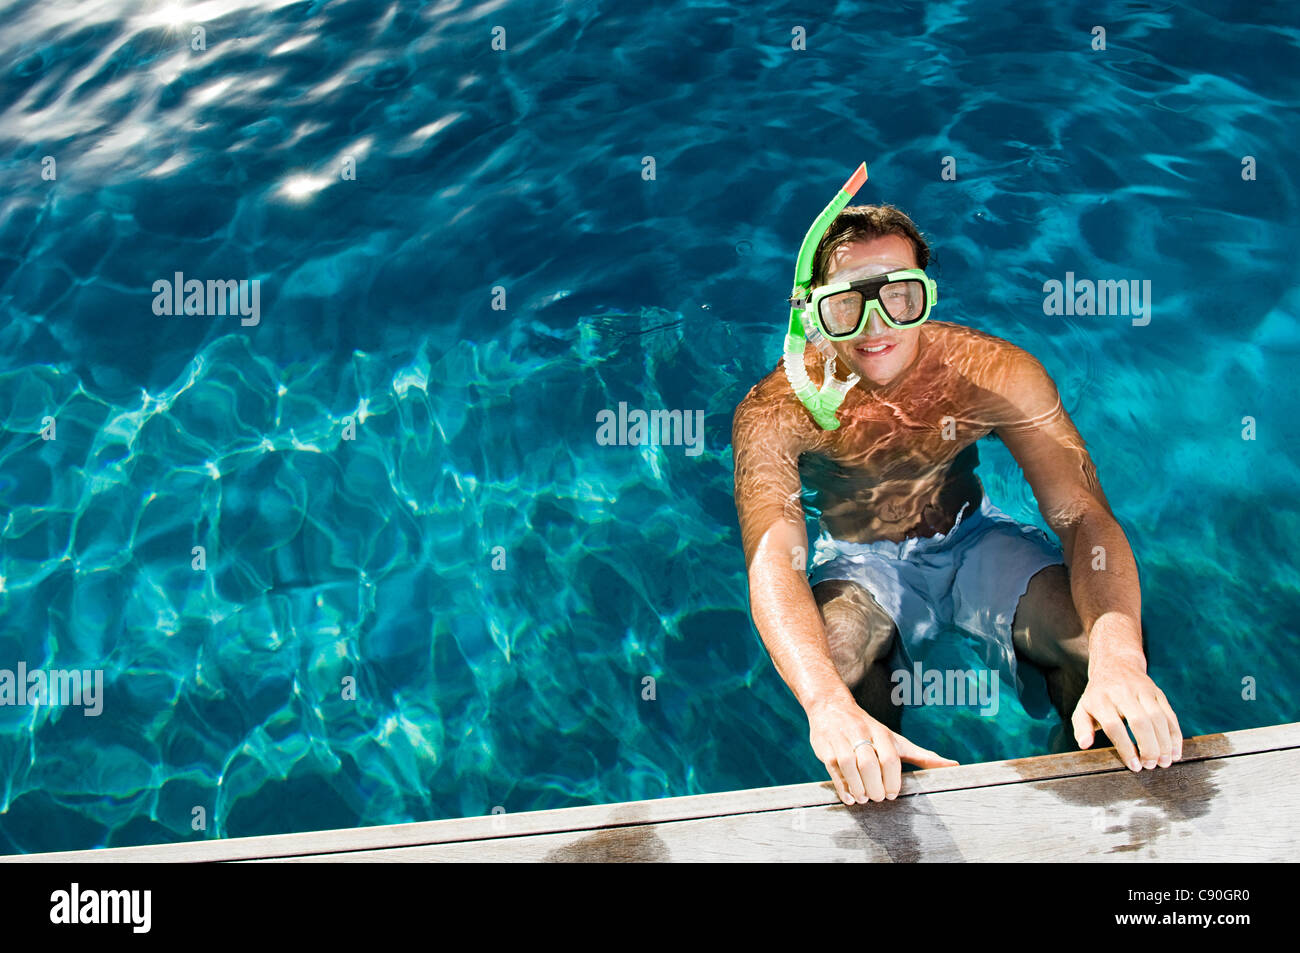 Young man wearing snorkel at poolside, high angle - Stock Image